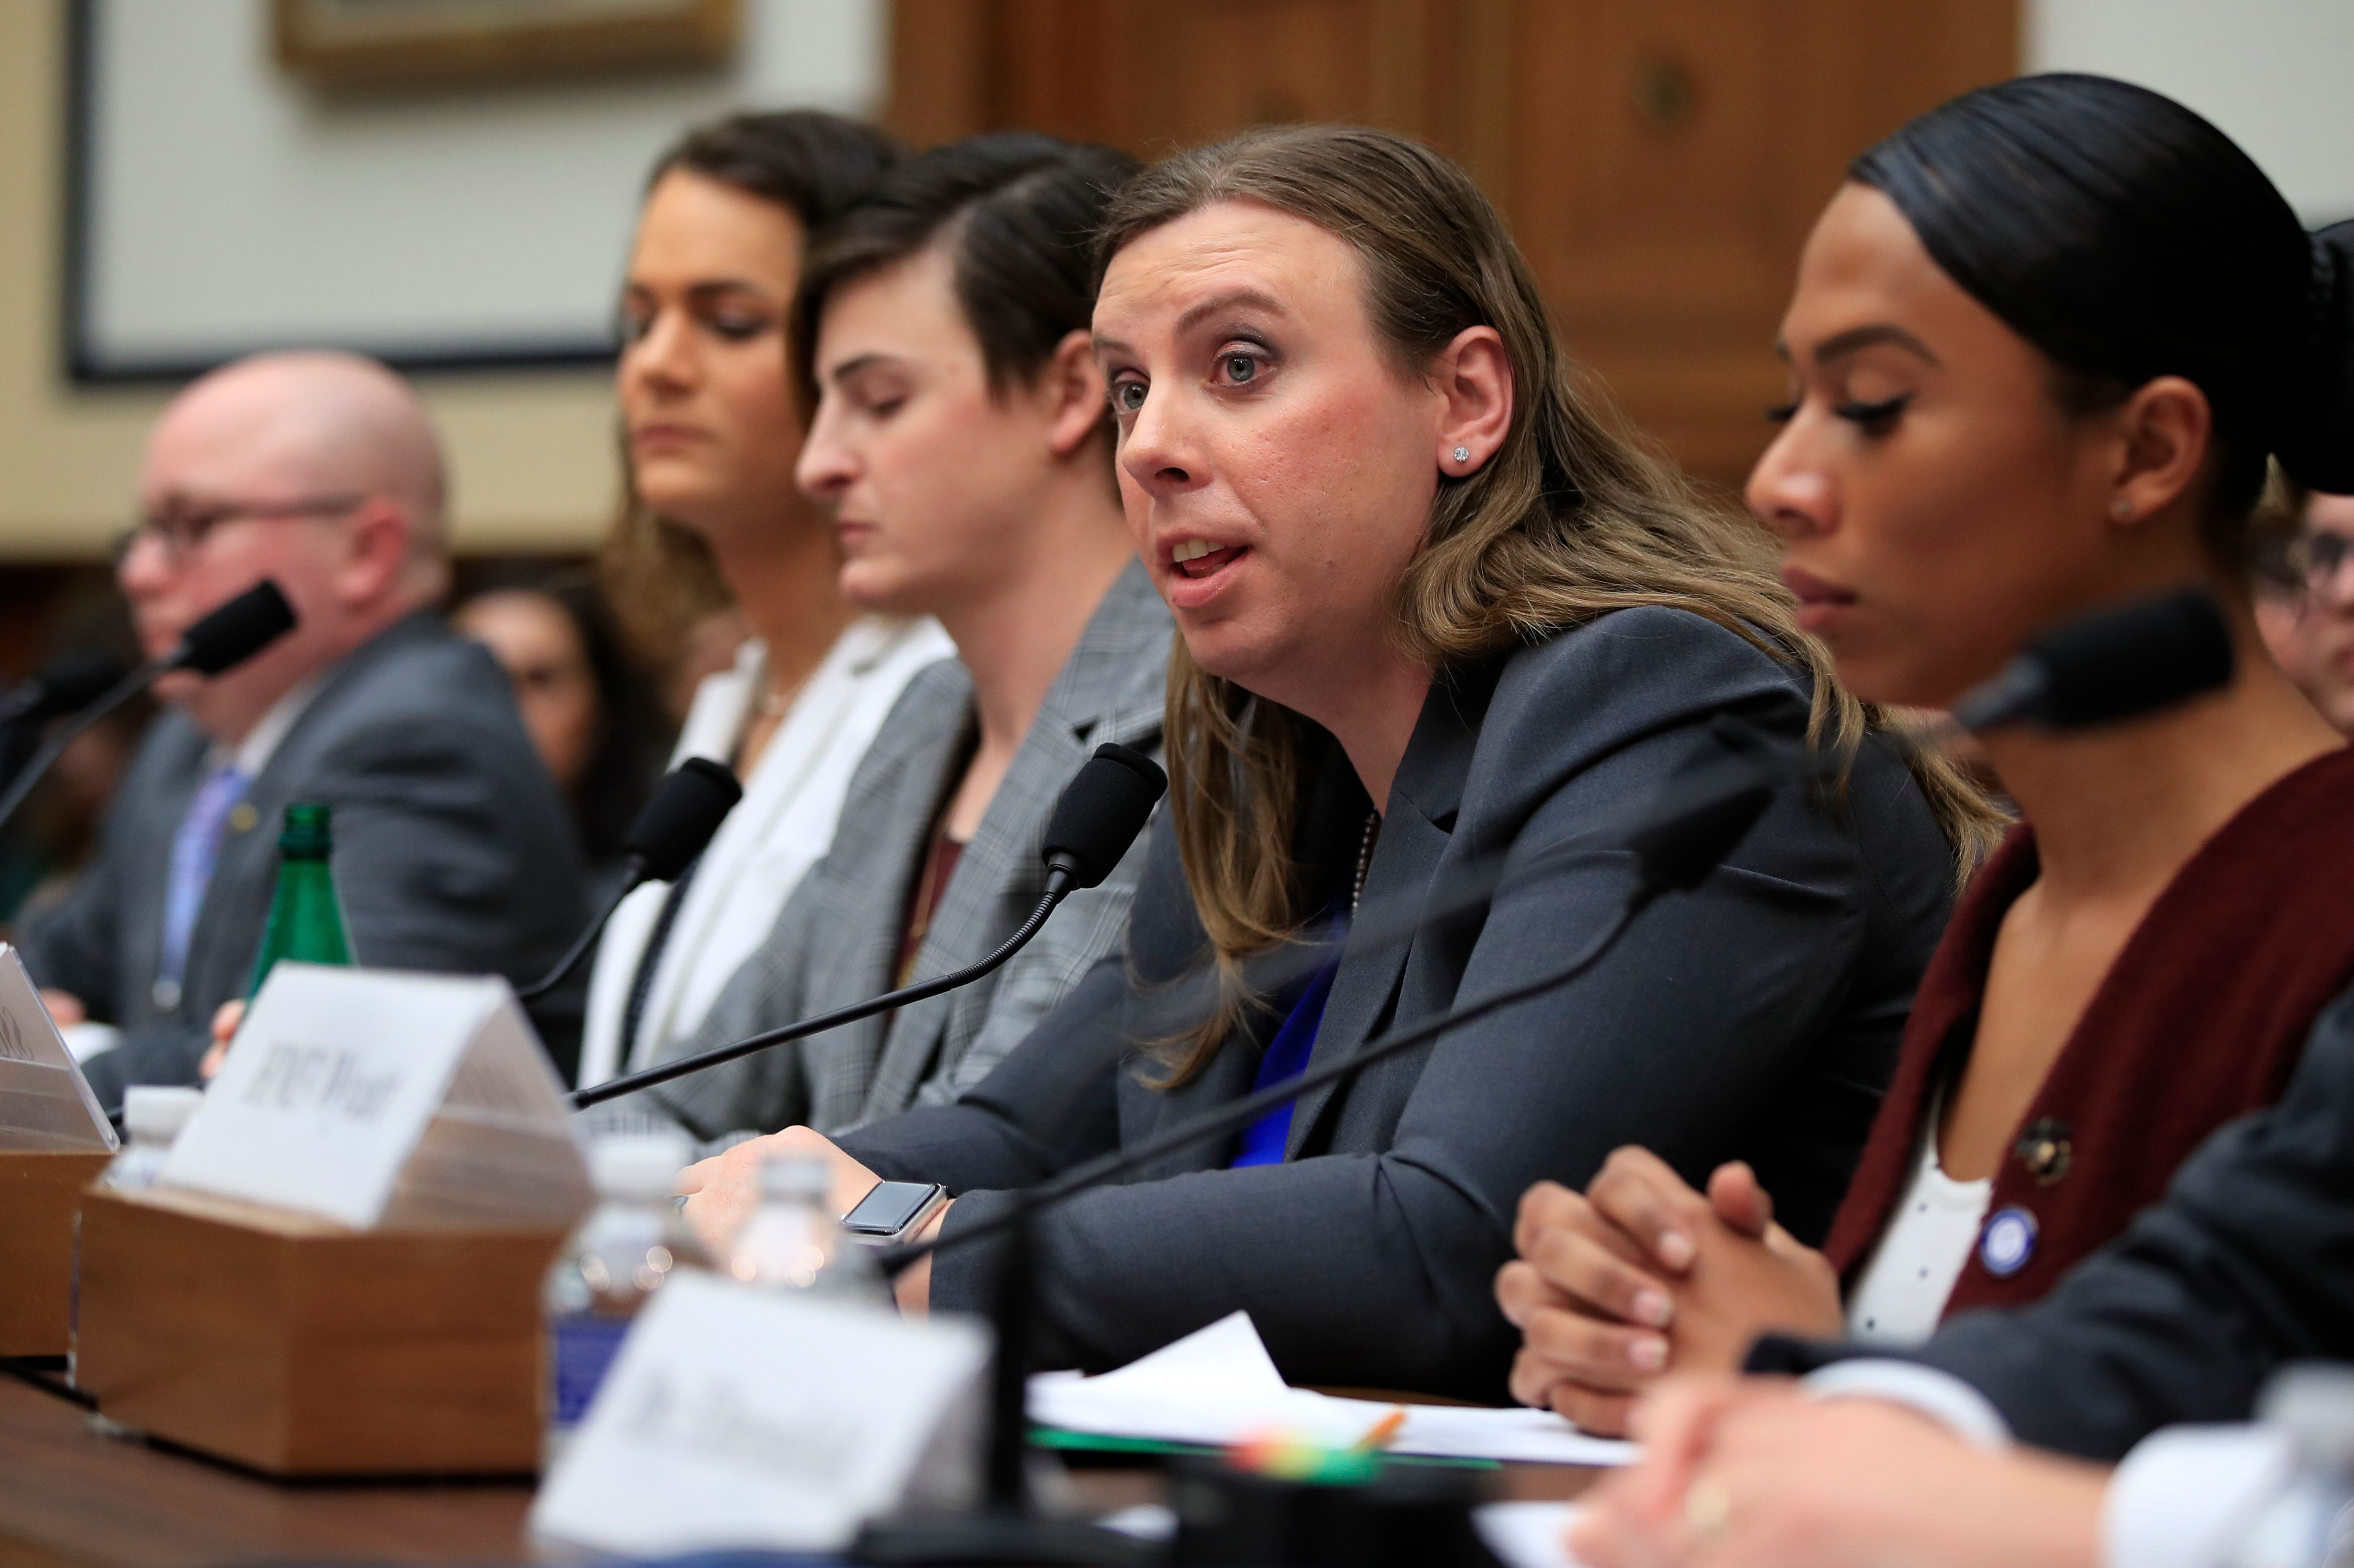 Army Staff Sgt. Patricia King, second from right, together with other transgender military members, from left, Navy Lt. Cmdr. Blake Dremann, Army Capt. Alivia Stehlik, Army Capt. Jennifer Peace and Navy Petty Officer Third Class Akira Wyatt, testify about their military service before a House Armed Services Subcommittee on Military Personnel hearing on Capitol Hill in Washington, Wednesday, Feb. 27, 2019, as the Trump administration pushes to ban them. King was deployed three times to Afghanistan. (AP Photo/Manuel Balce Ceneta)